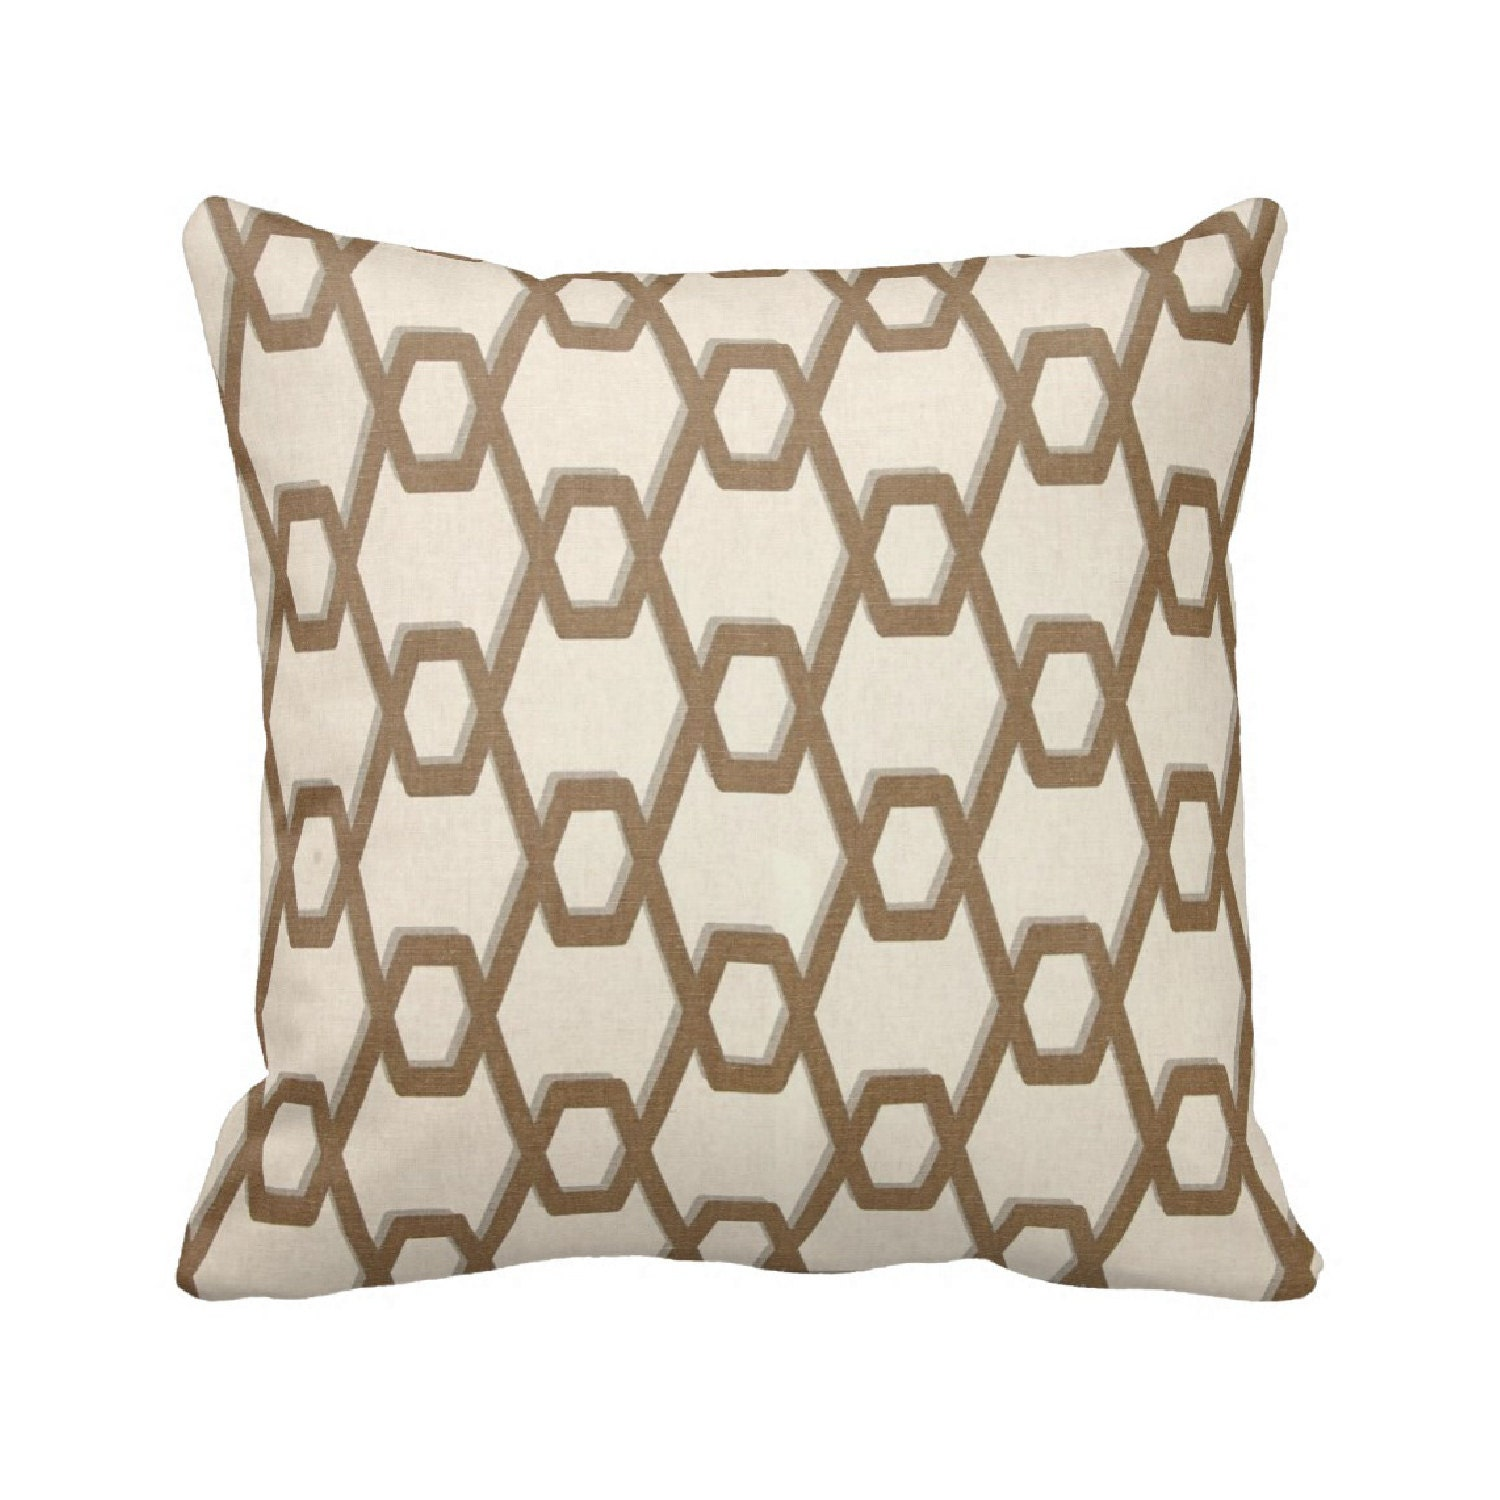 Throw Pillow Cover Pattern With Zipper : Dining & Serving